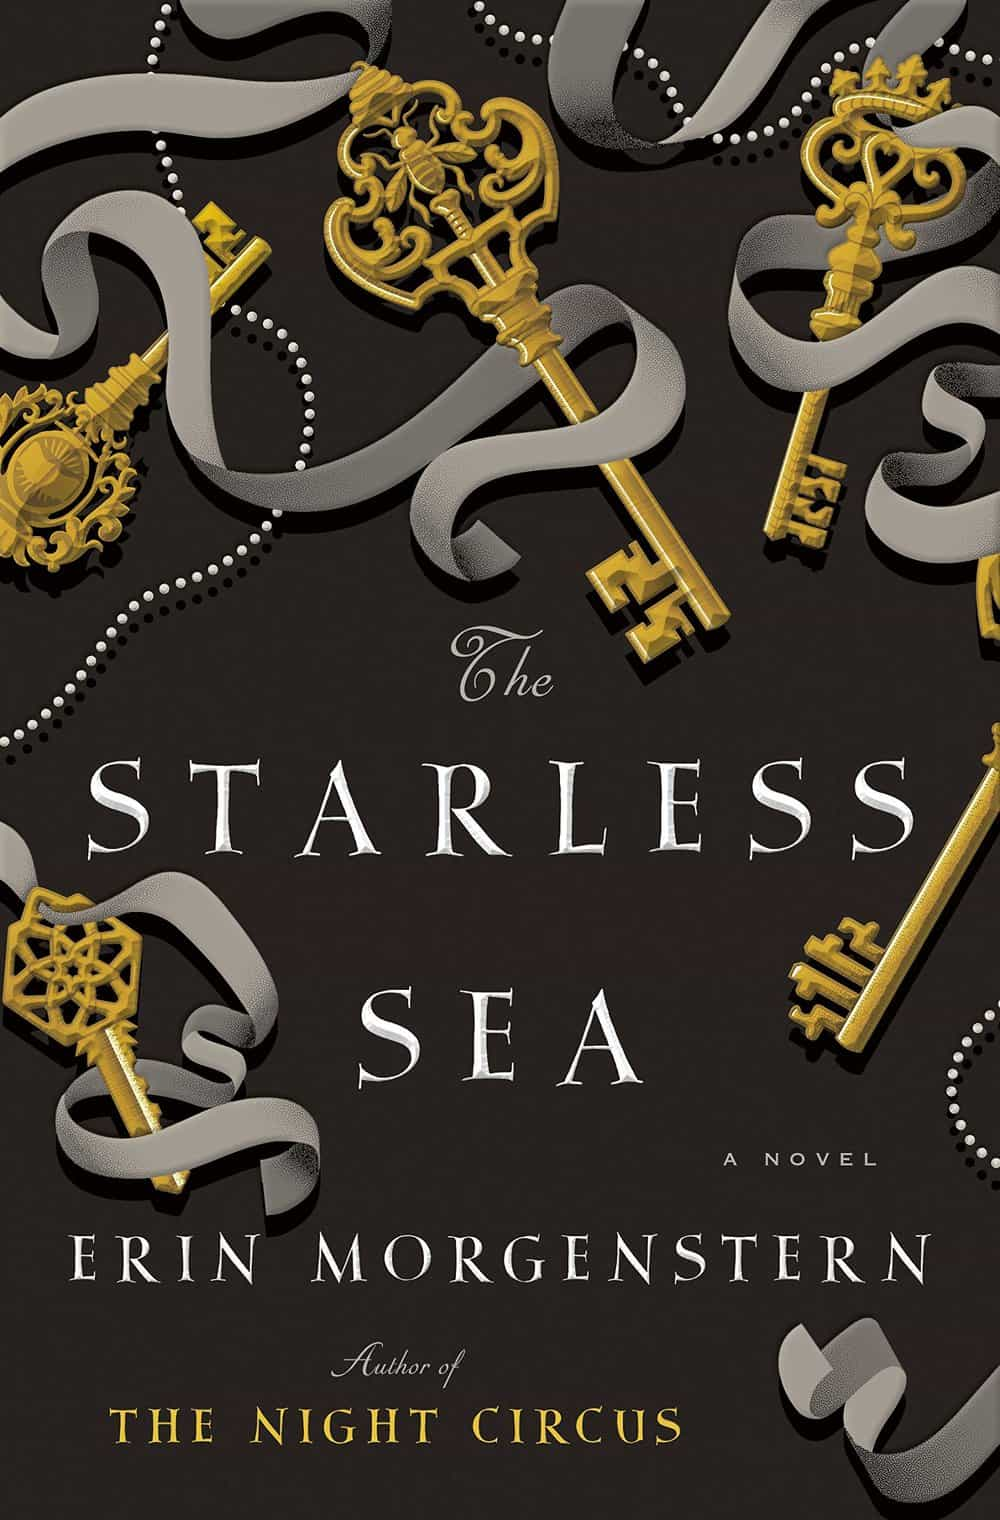 Standalone Fantasy Novel - The Starless Sea by Erin Morgenstern